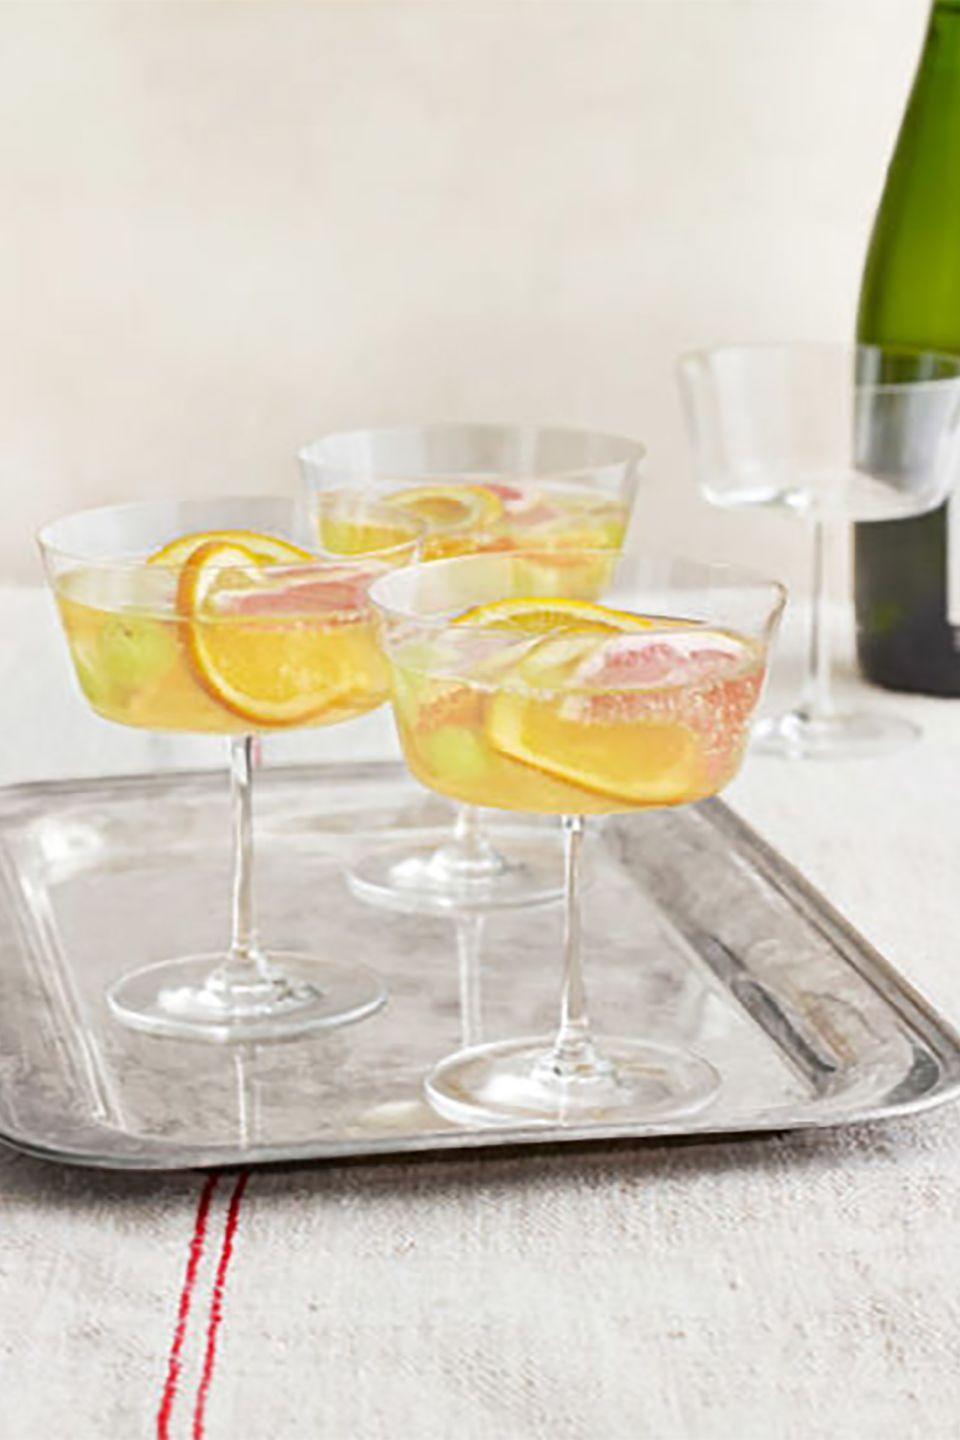 """<p>Try a new take on New Year's bubbly by sipping this cocktail, featuring St-Germain-soaked winter fruit and prosecco.</p><p><strong><a href=""""https://www.countryliving.com/food-drinks/recipes/a4280/sparkling-winter-sangria-recipe-clv1212/"""" rel=""""nofollow noopener"""" target=""""_blank"""" data-ylk=""""slk:Get the recipe"""" class=""""link rapid-noclick-resp"""">Get the recipe</a>.</strong></p>"""